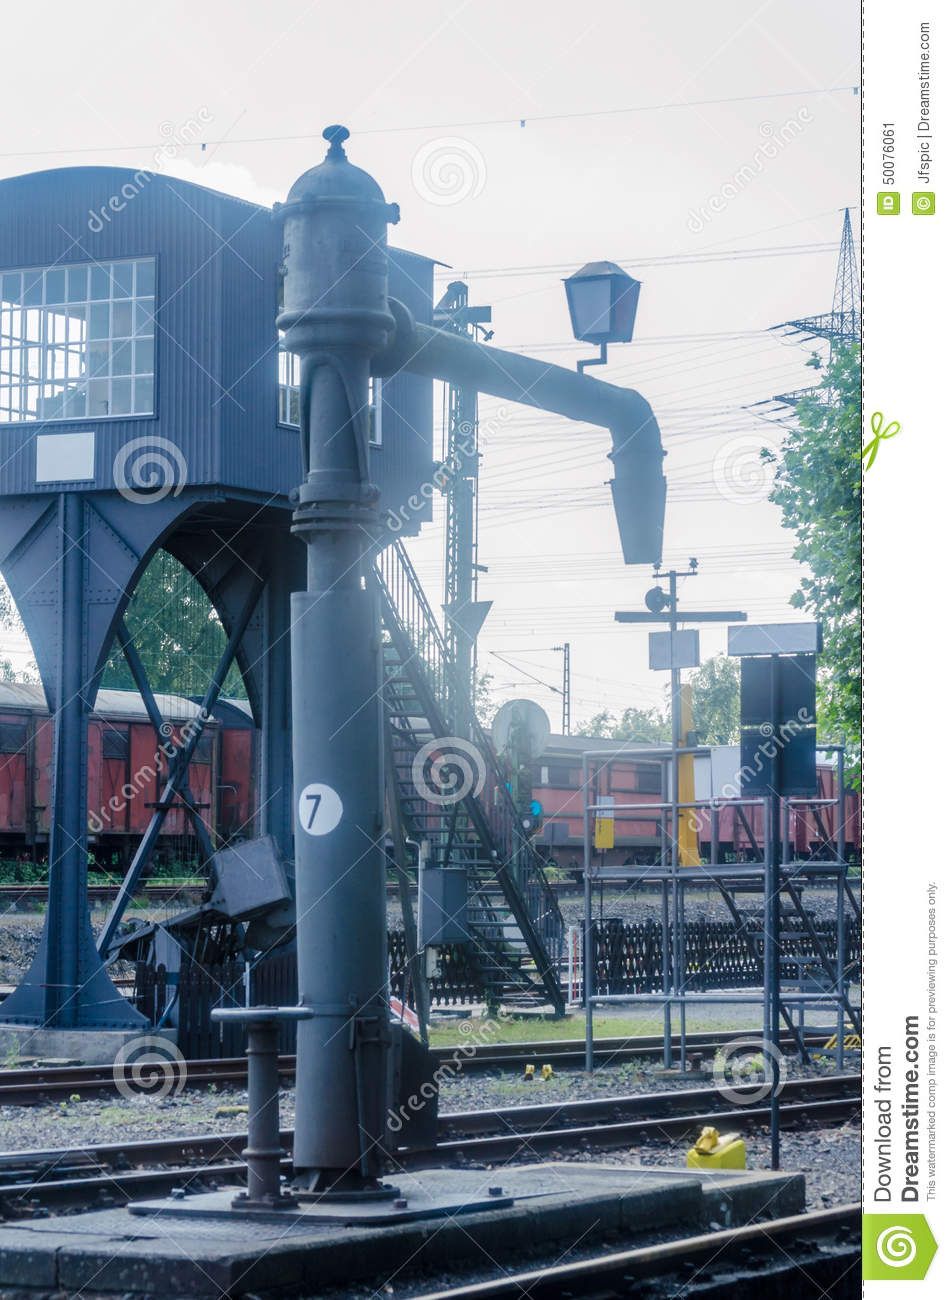 Water For Steam Locomotives Stock Image - Image of painted, fill ...